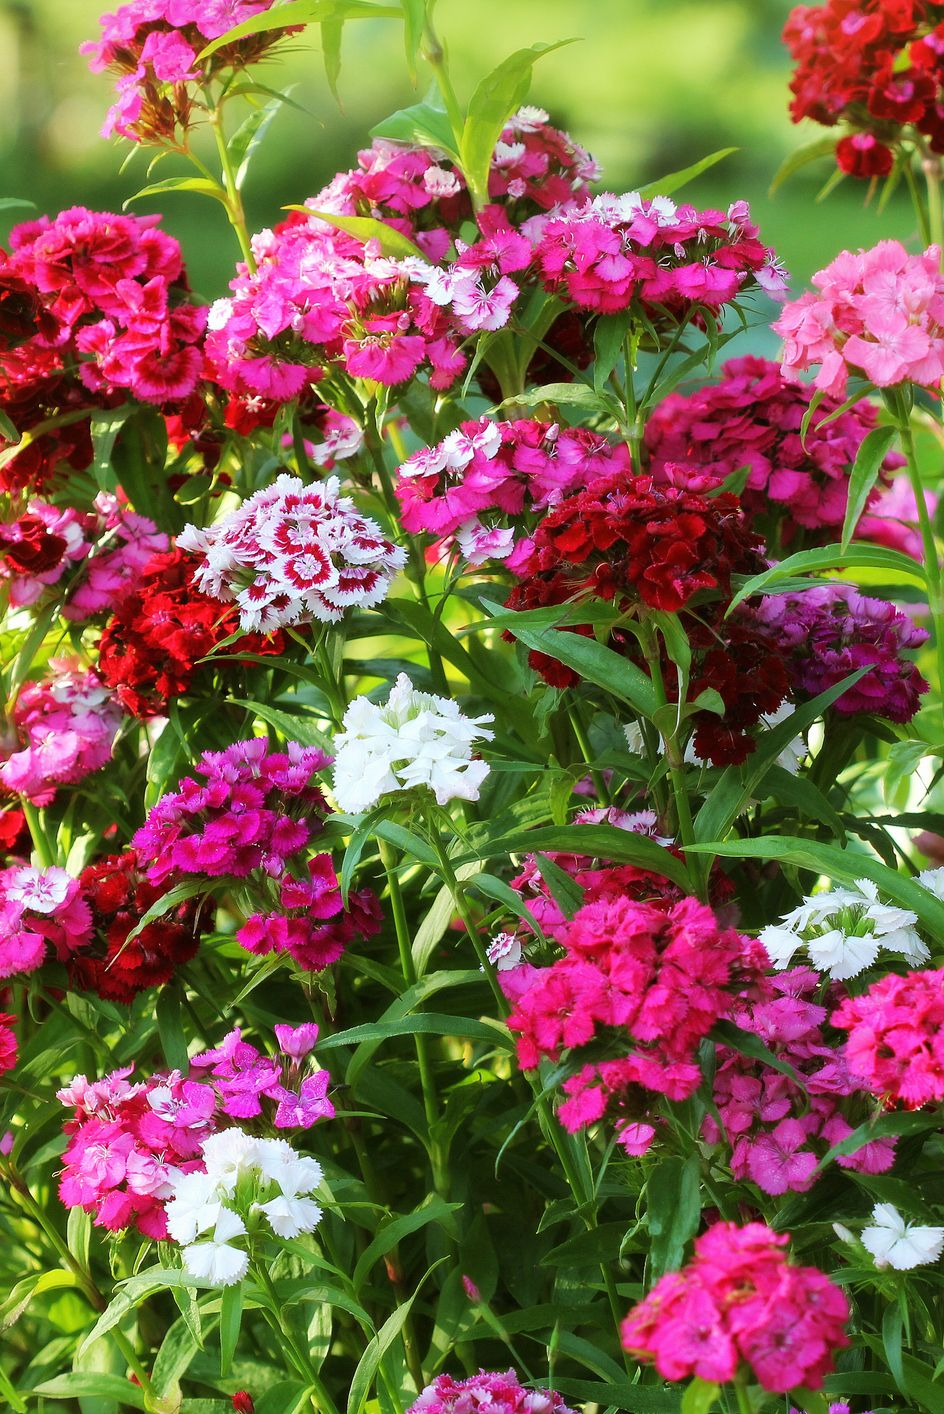 25 Fall Flowers That'll Spruce Up Your Garden This Autumn